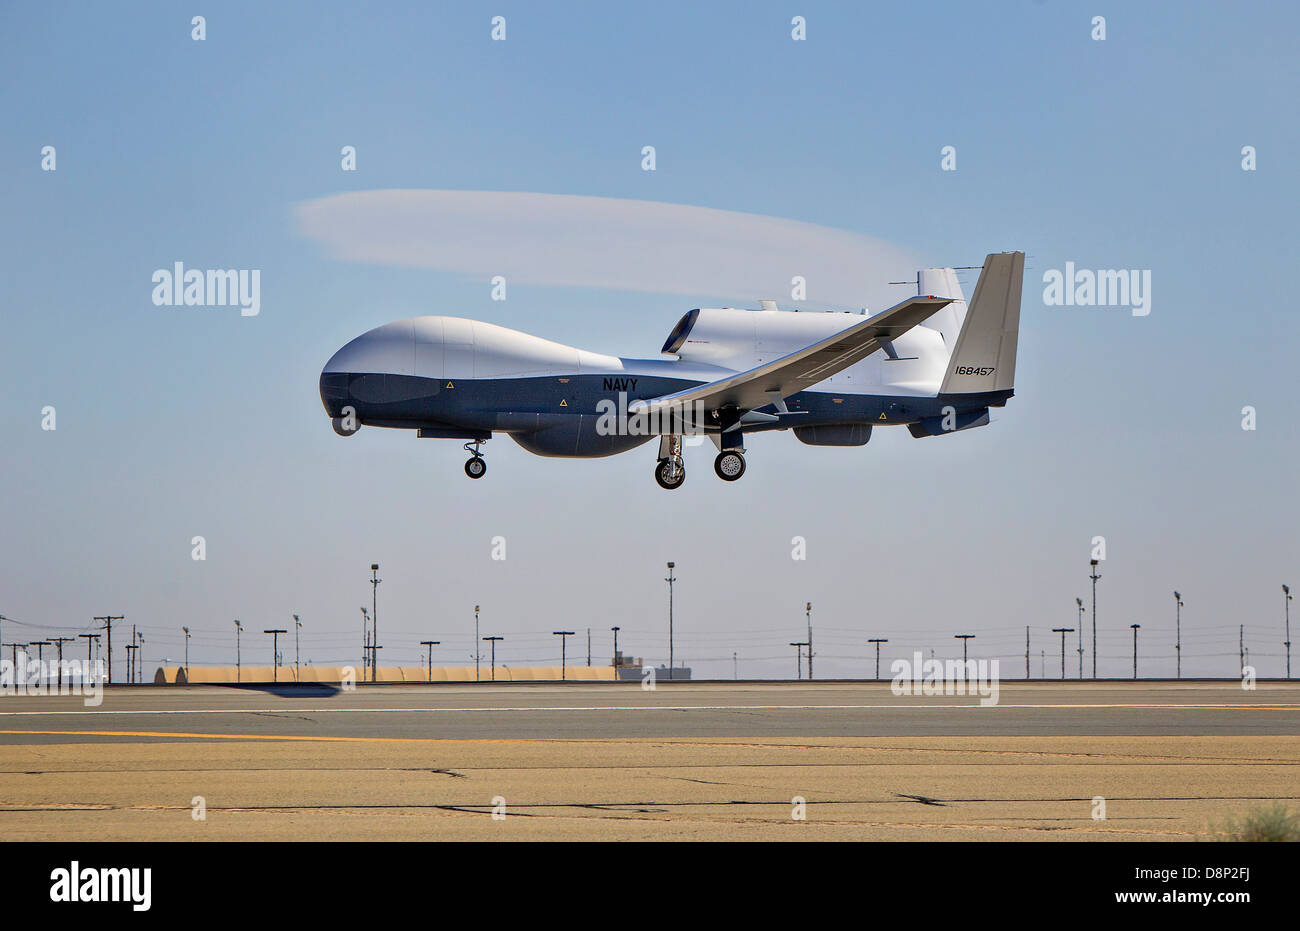 Northrop Grumman MQ-4C Triton unmanned aerial vehicle on the first flight test performs a landing April 22, 2013 Stock Photo